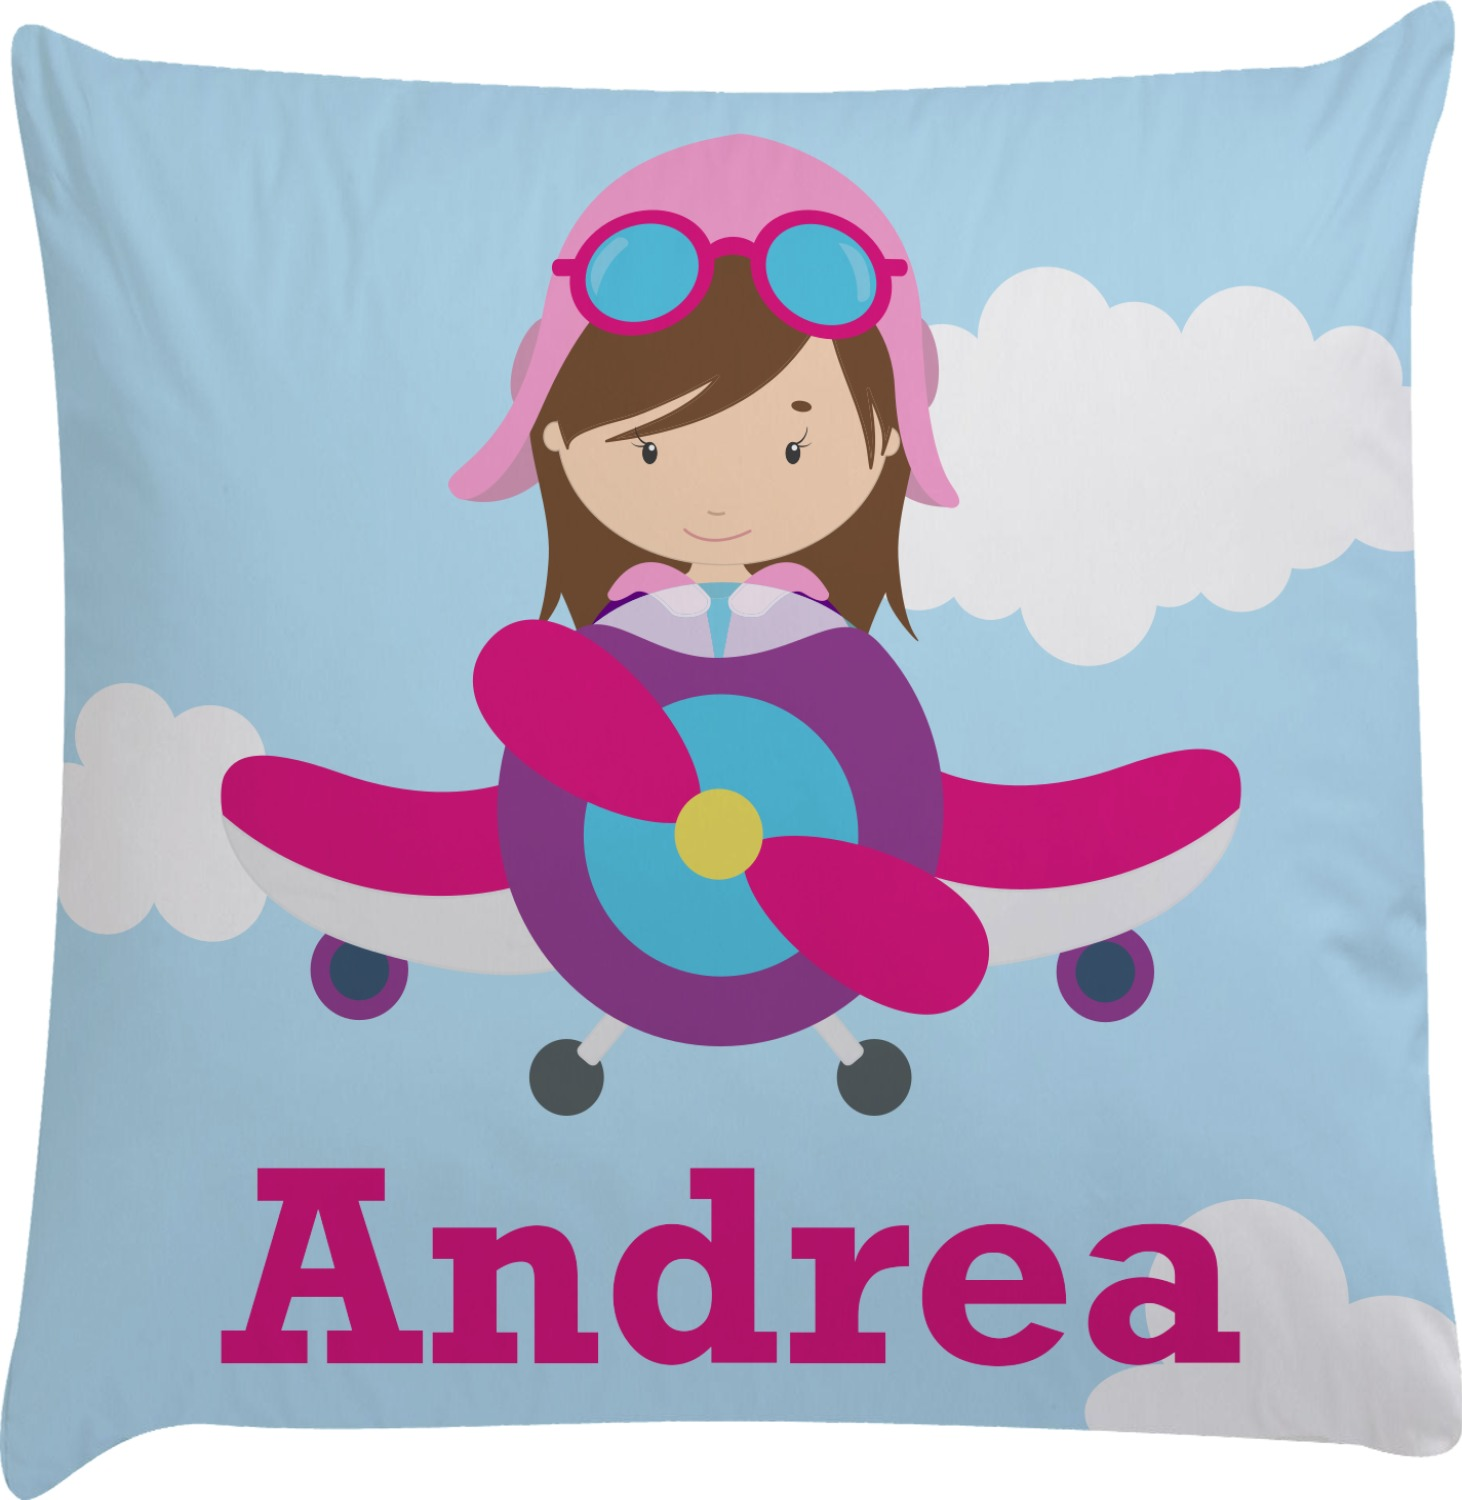 Decorative Airplane Pillow : Airplane & Girl Pilot Decorative Pillow Case (Personalized) - YouCustomizeIt